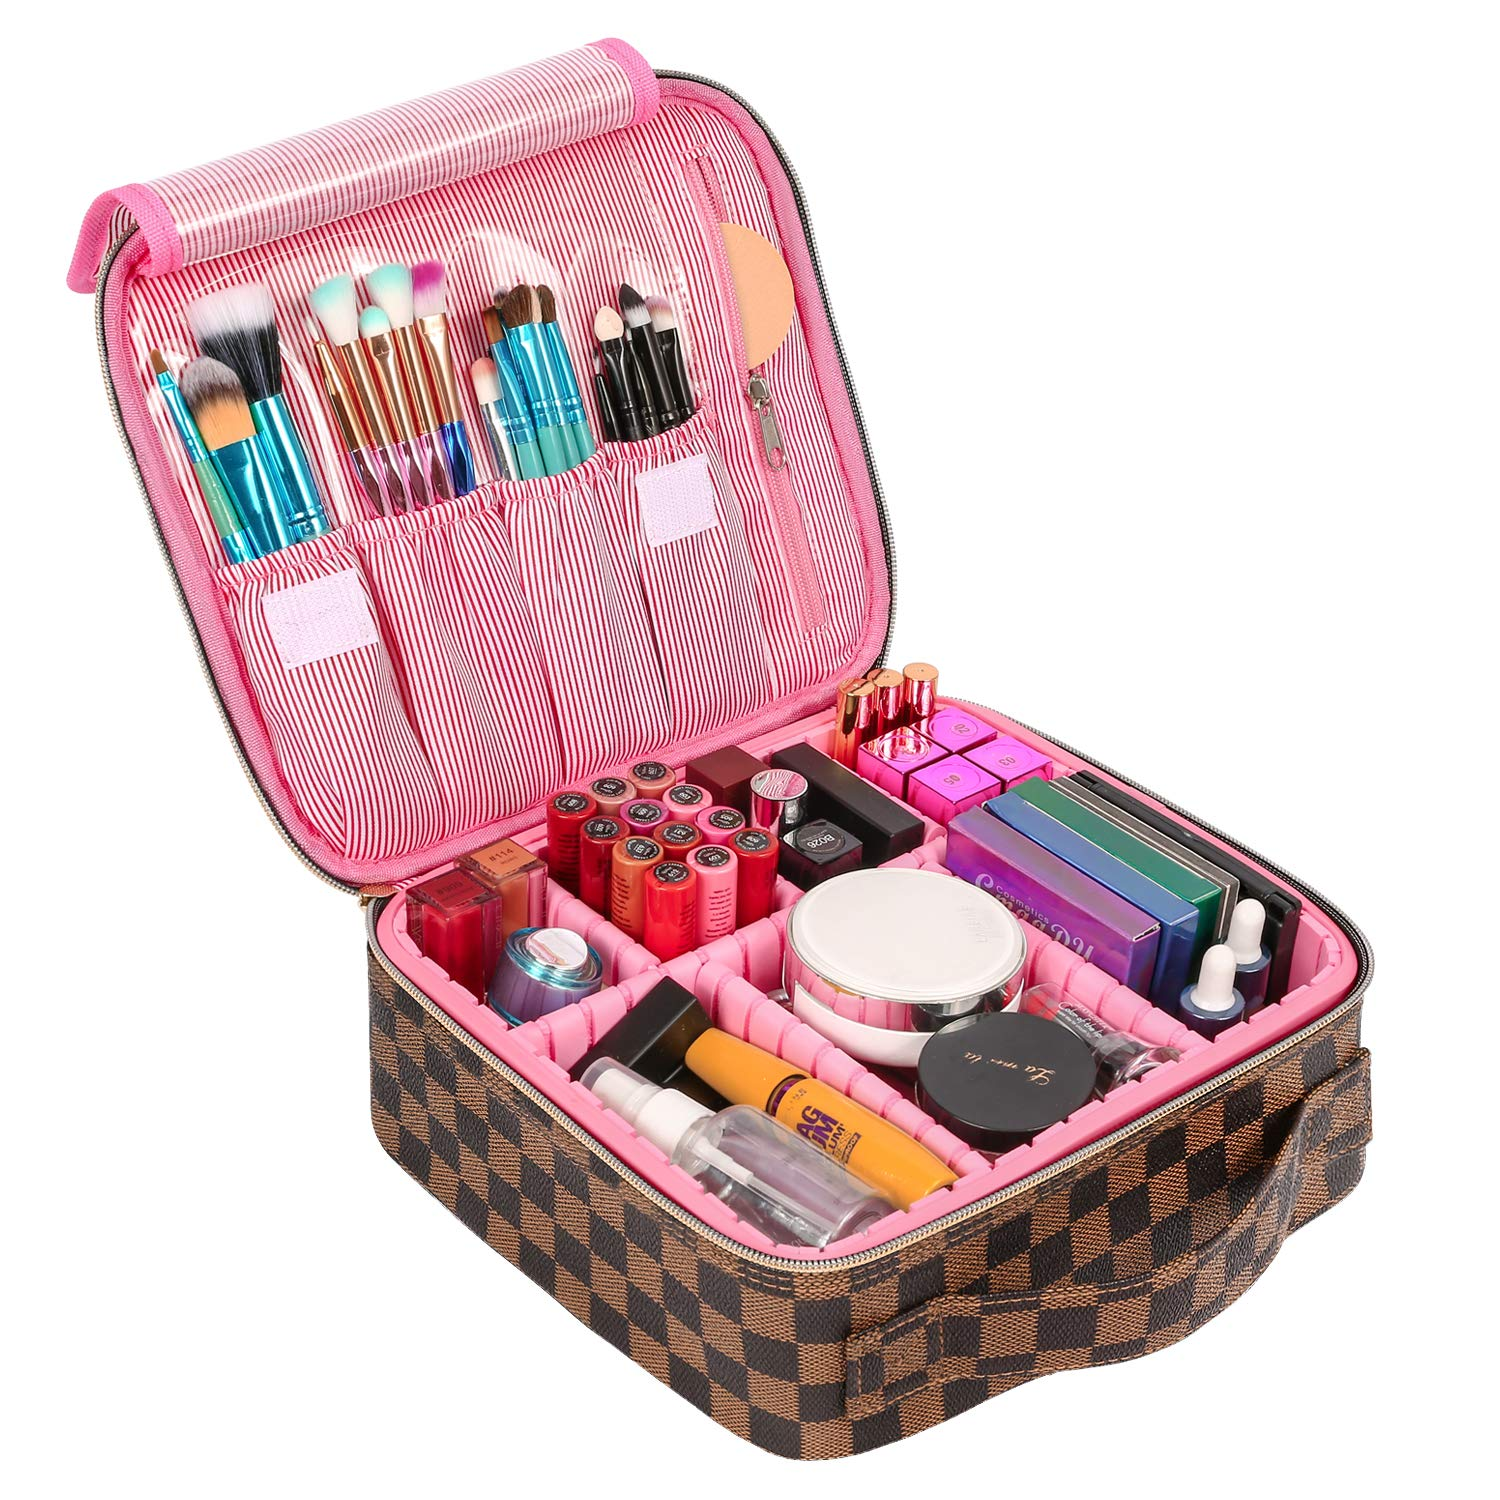 SSSCase Travel Makeup Bag Cute Cosmetic Case Professional Train Case Large Make Up Box Storage Organizer with Brush Slots, Removable Inserts, Hard Shell for Women Girls, Brown & Pink